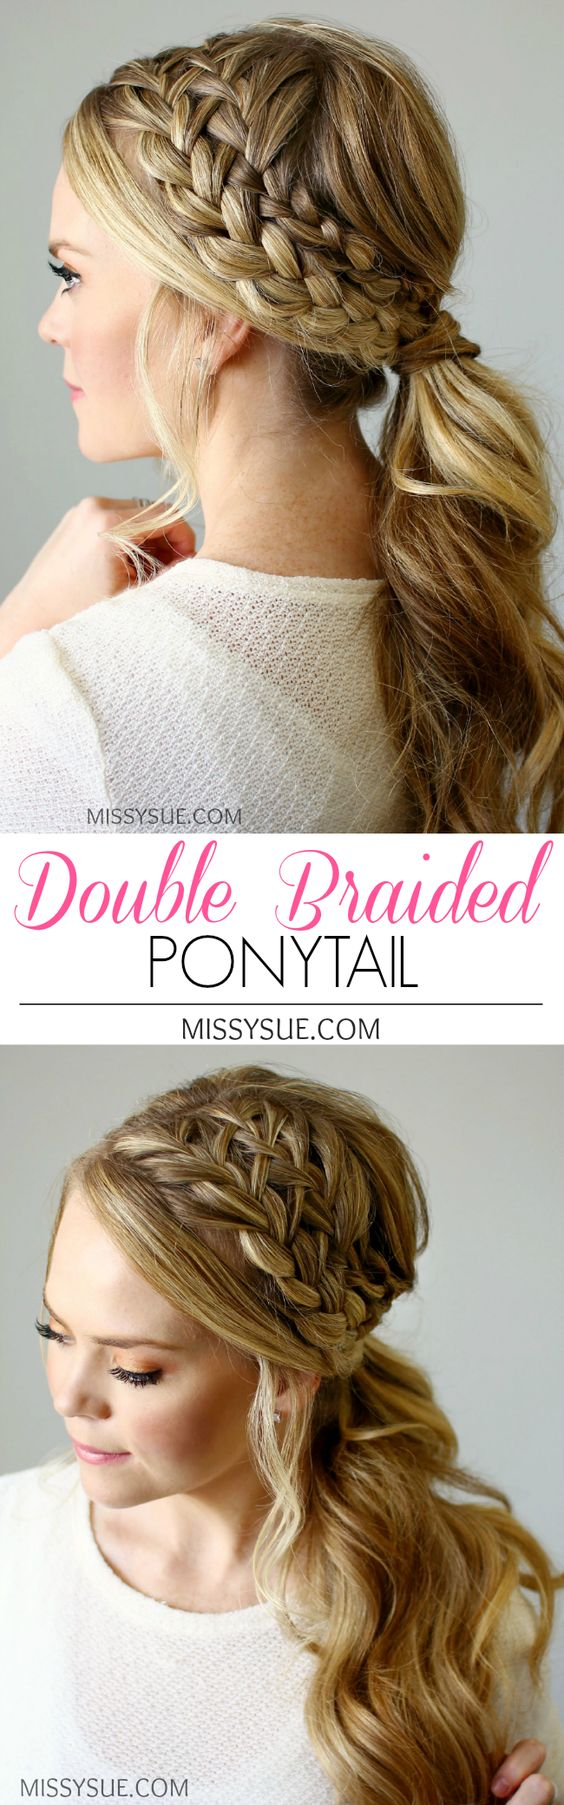 30 Simple Easy Ponytail Hairstyles for Lazy Girls - Ponytail Ideas ...